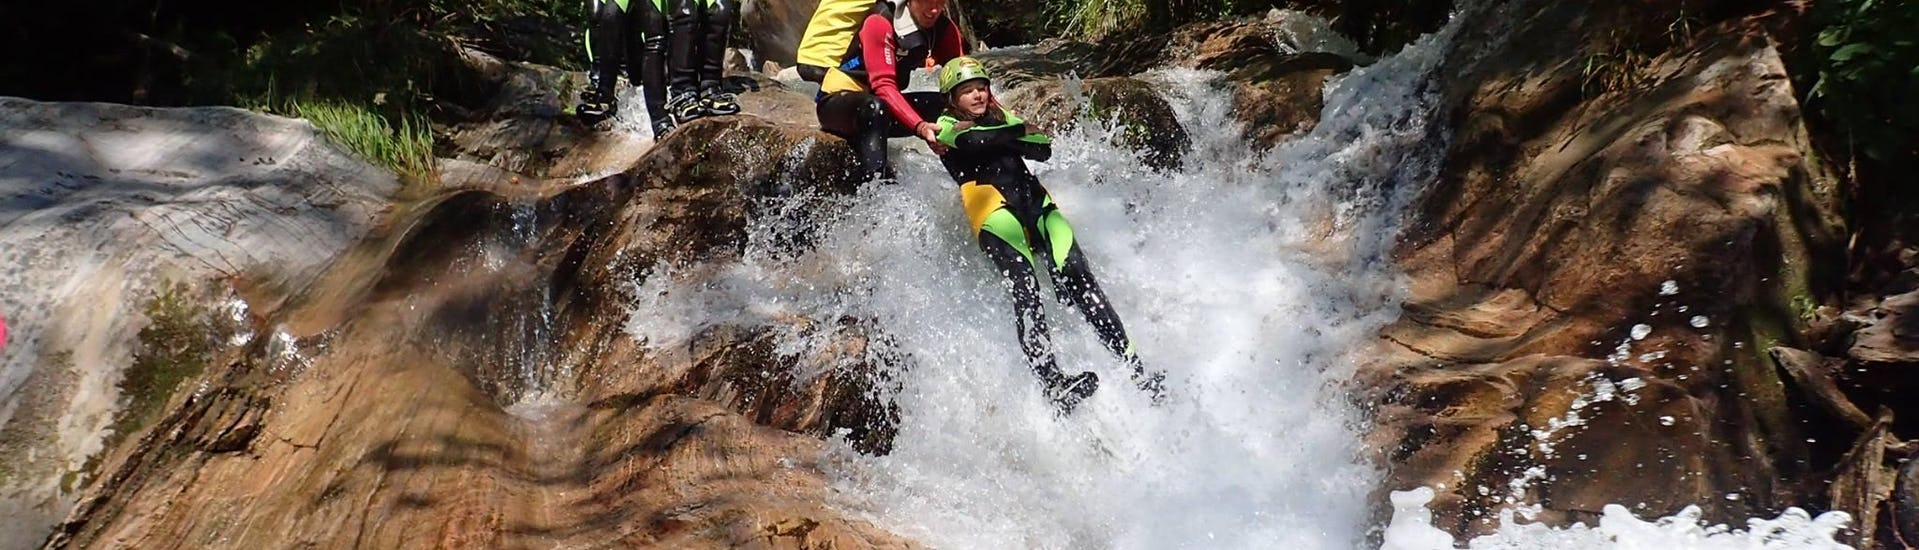 Canyoning for Explorers - Wöllaschlucht